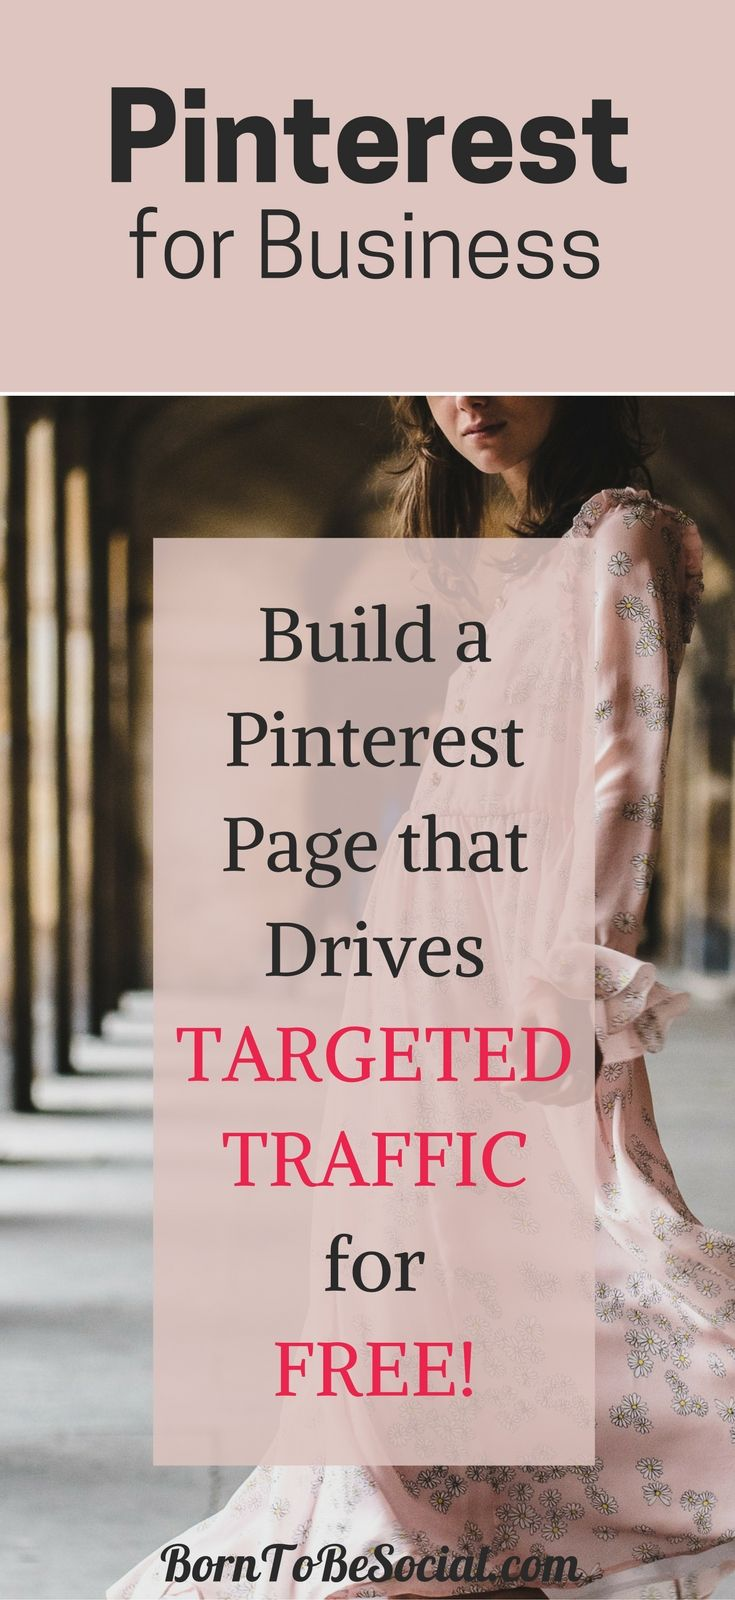 Build a Pinterest Page that Drives TARGETED (& Free!) SITE TRAFFIC. Learn how to build a PERFECT Pinterest page that attracts your ideal client and sends highly targeted traffic to your website. | via @BornToBeSocial, Pinterest Marketing & Consulting | Pinterest for Business #ExpertPinterest #PinterestForBusiness #PinterestMarketingTips #Pinterest